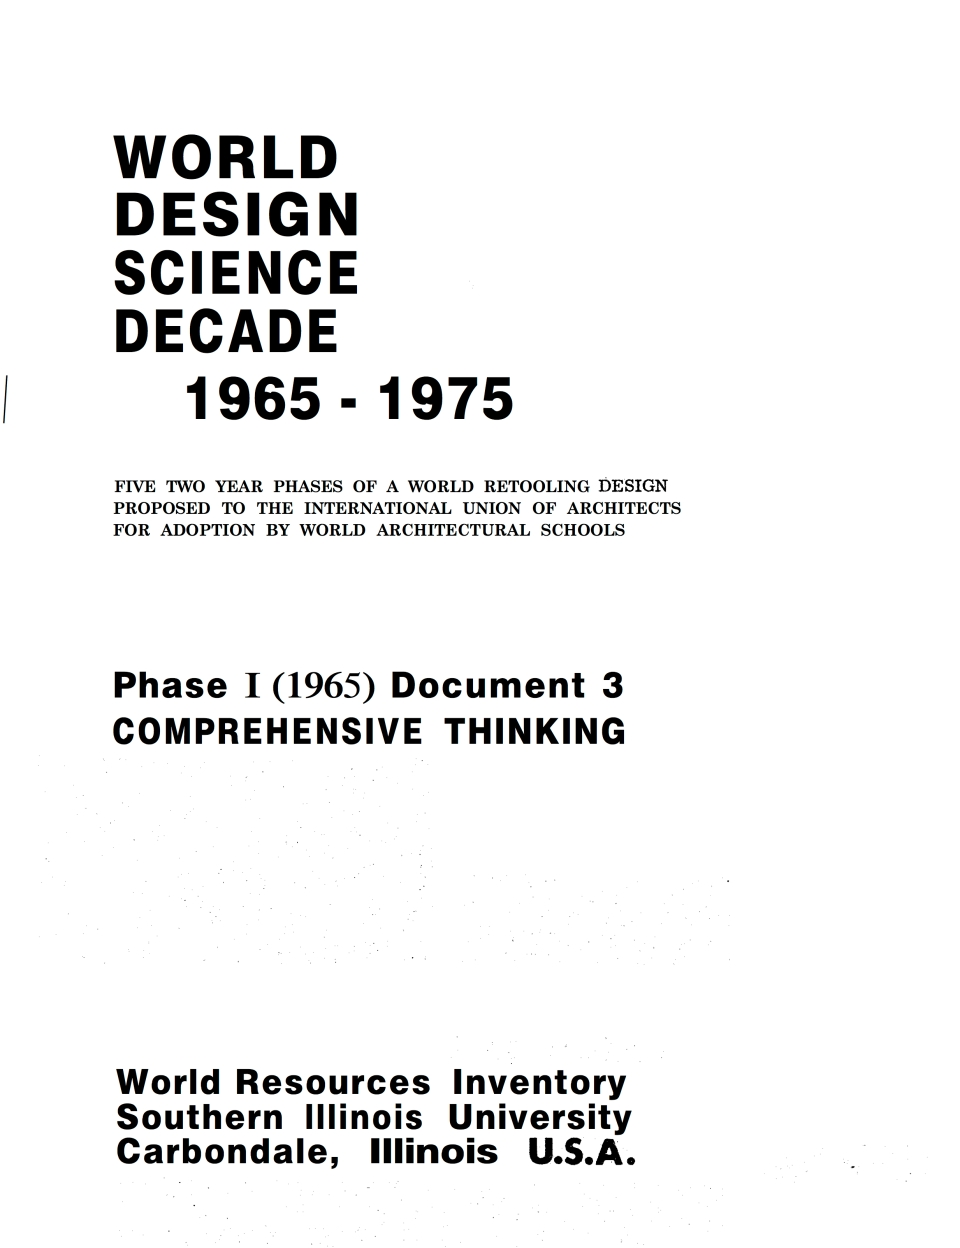 BuckminsterFuller-ComprehensiveThinking-Phase I-1965-Document3-WorldDesignScience